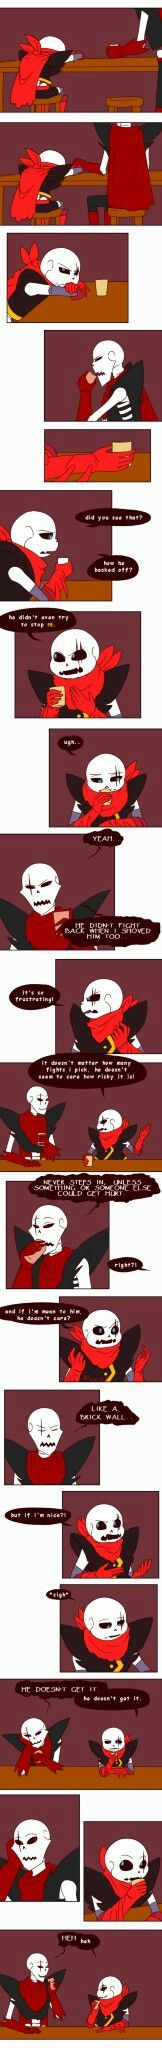 Drink page 13 by Maxlad on DeviantArt Sans And Papyrus, Undertale Au, Funny Comics, Deviantart, Drinks, Funny Things, Movie, Manga, Games